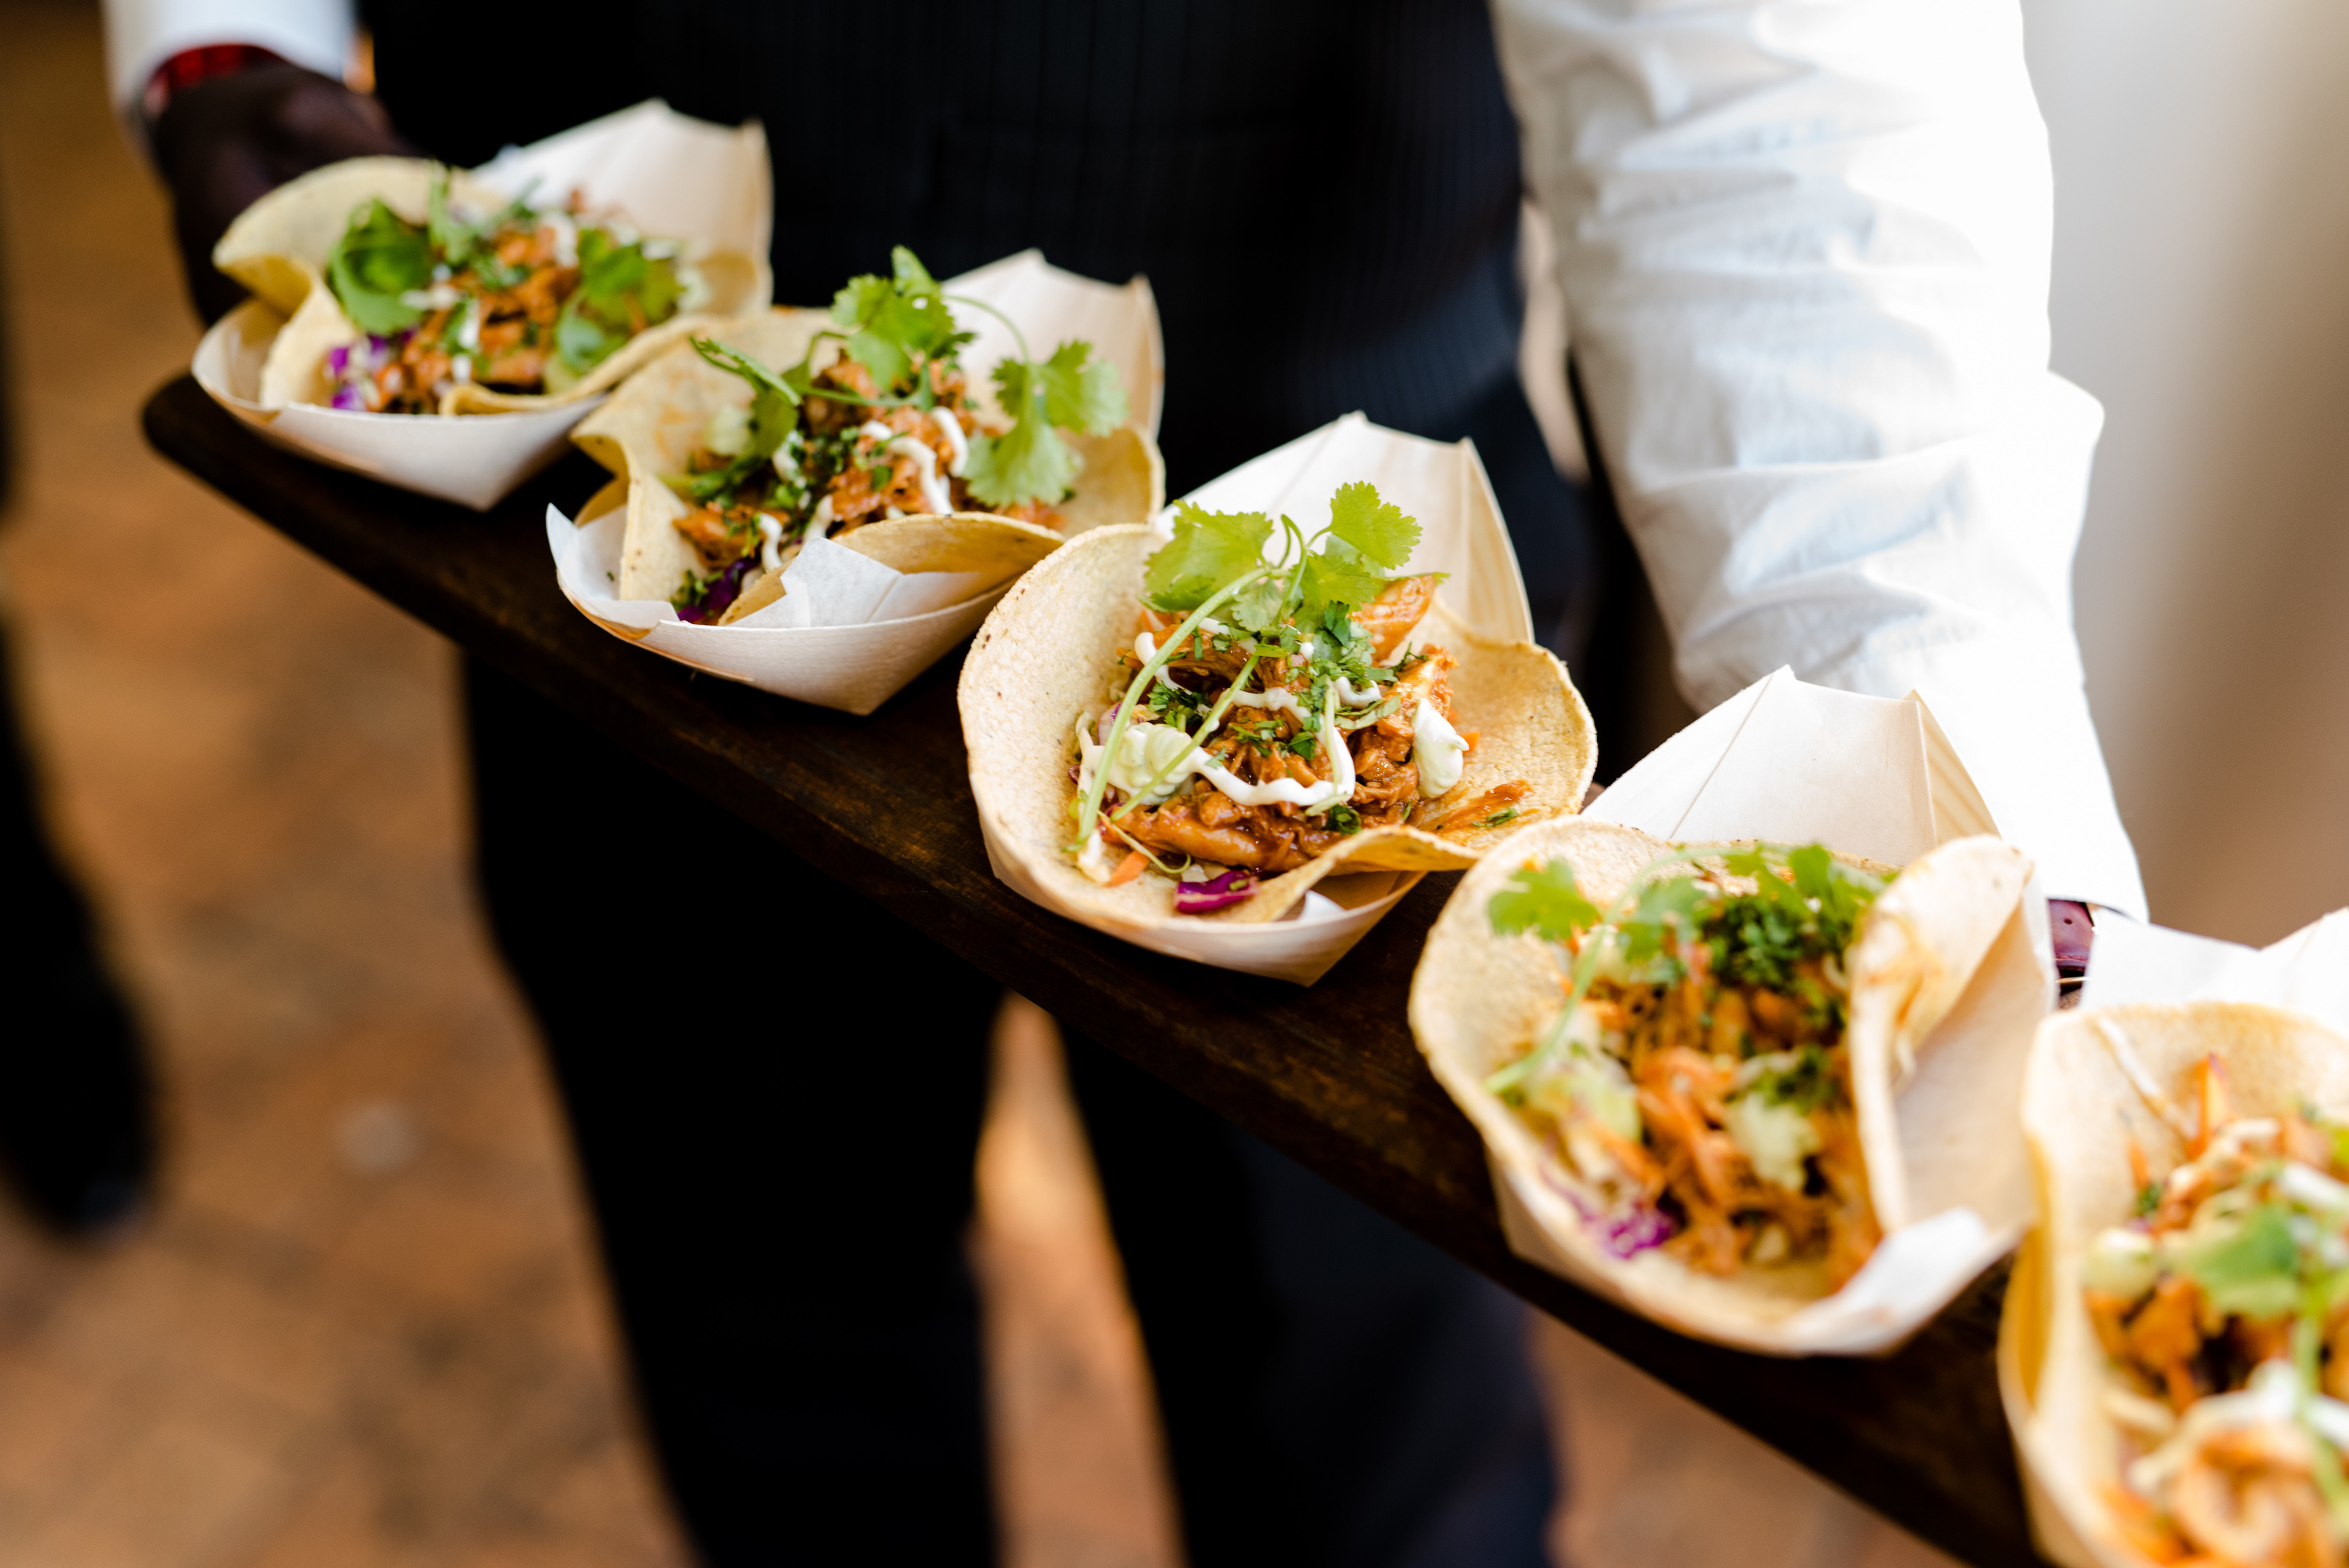 Tacos served at the DStv event